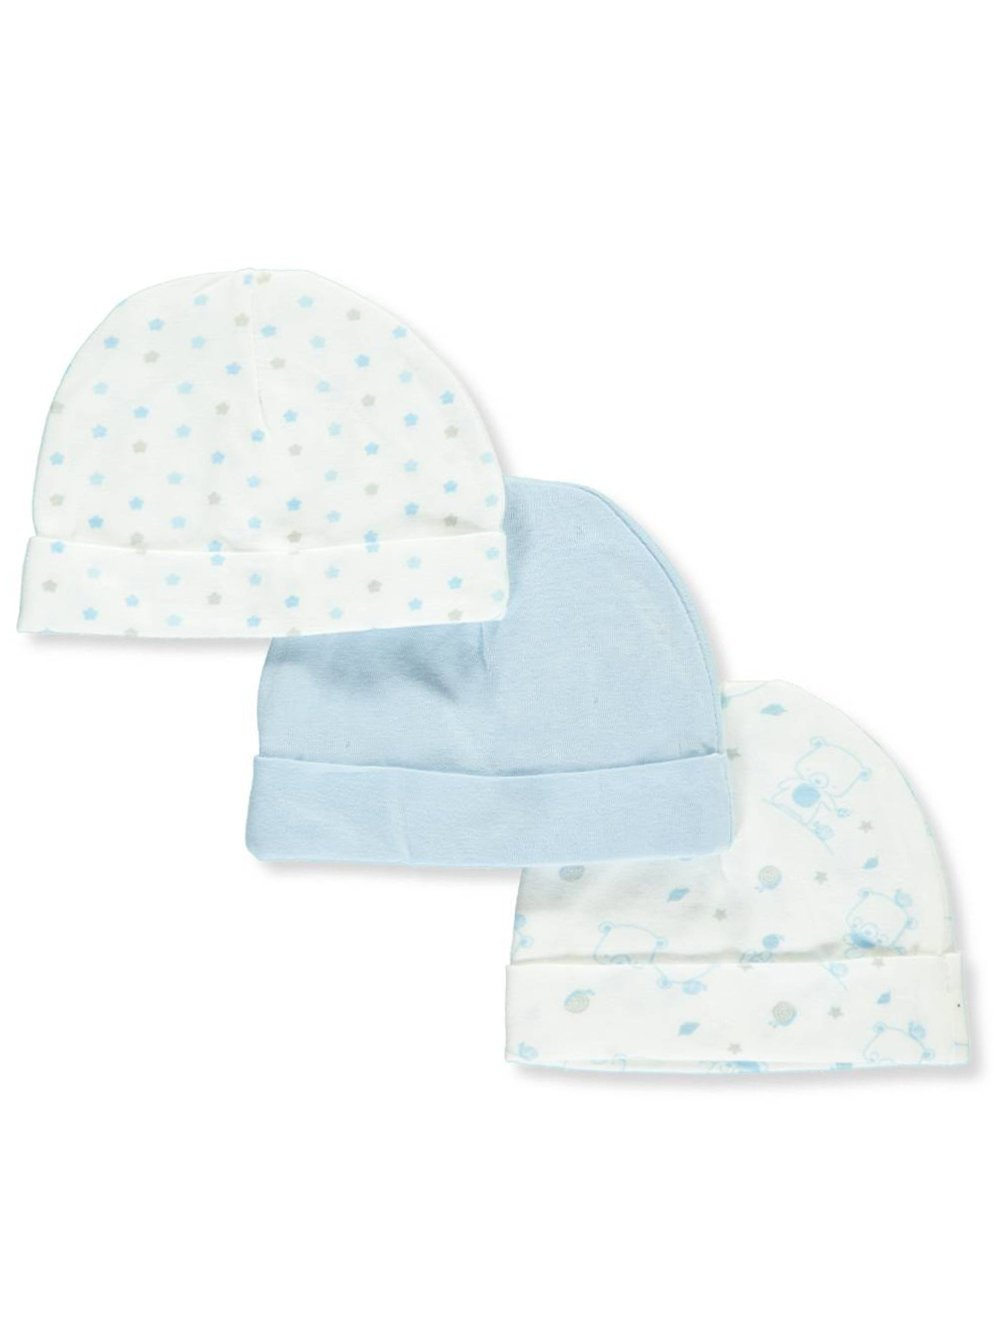 Mary Jane & Buster Baby Big Boys' 3-Pack Caps - white/blue, one size